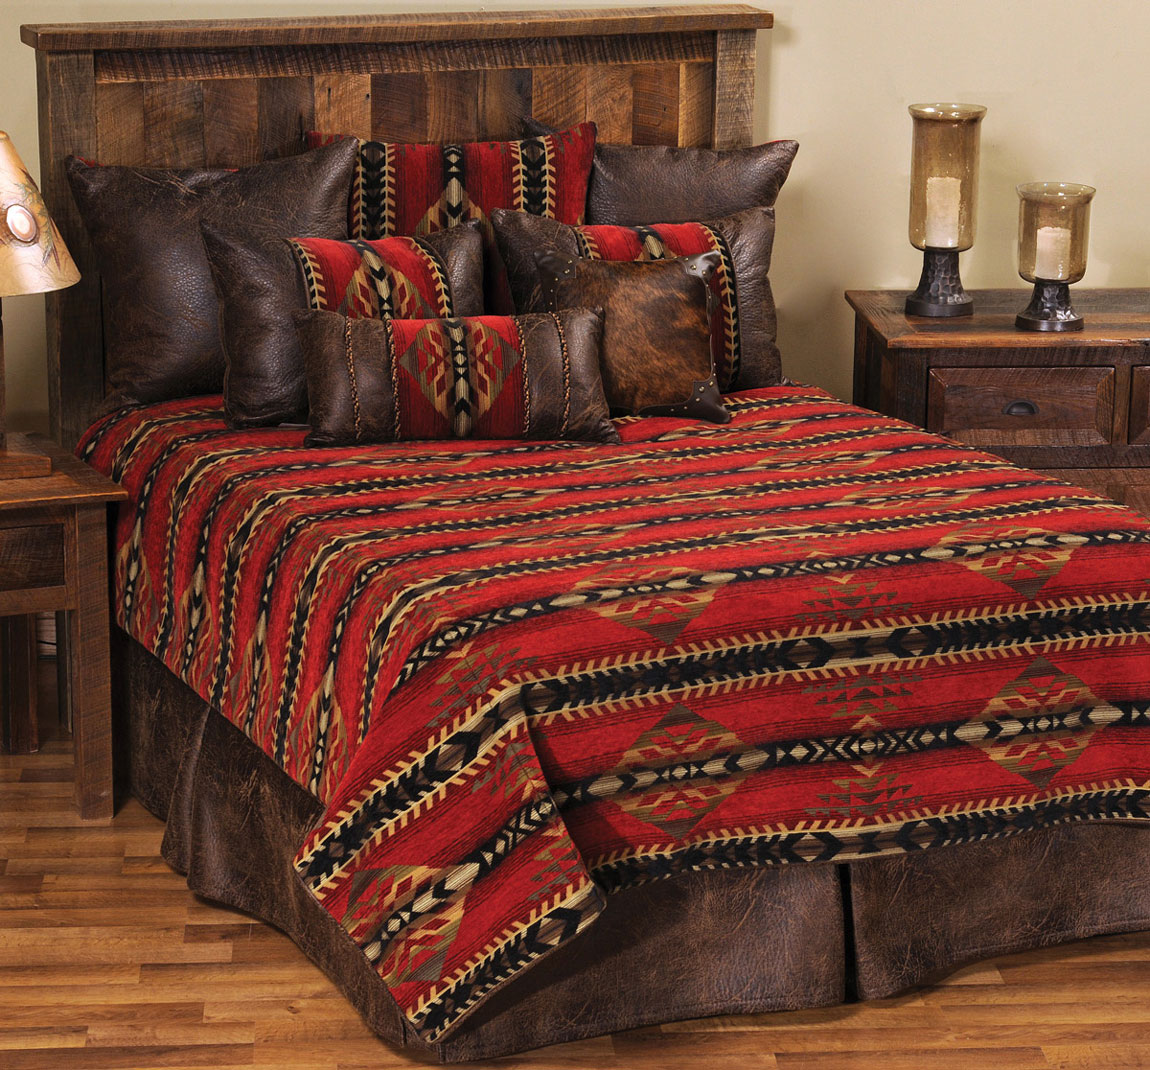 Gallop Value Bed Set - Super King